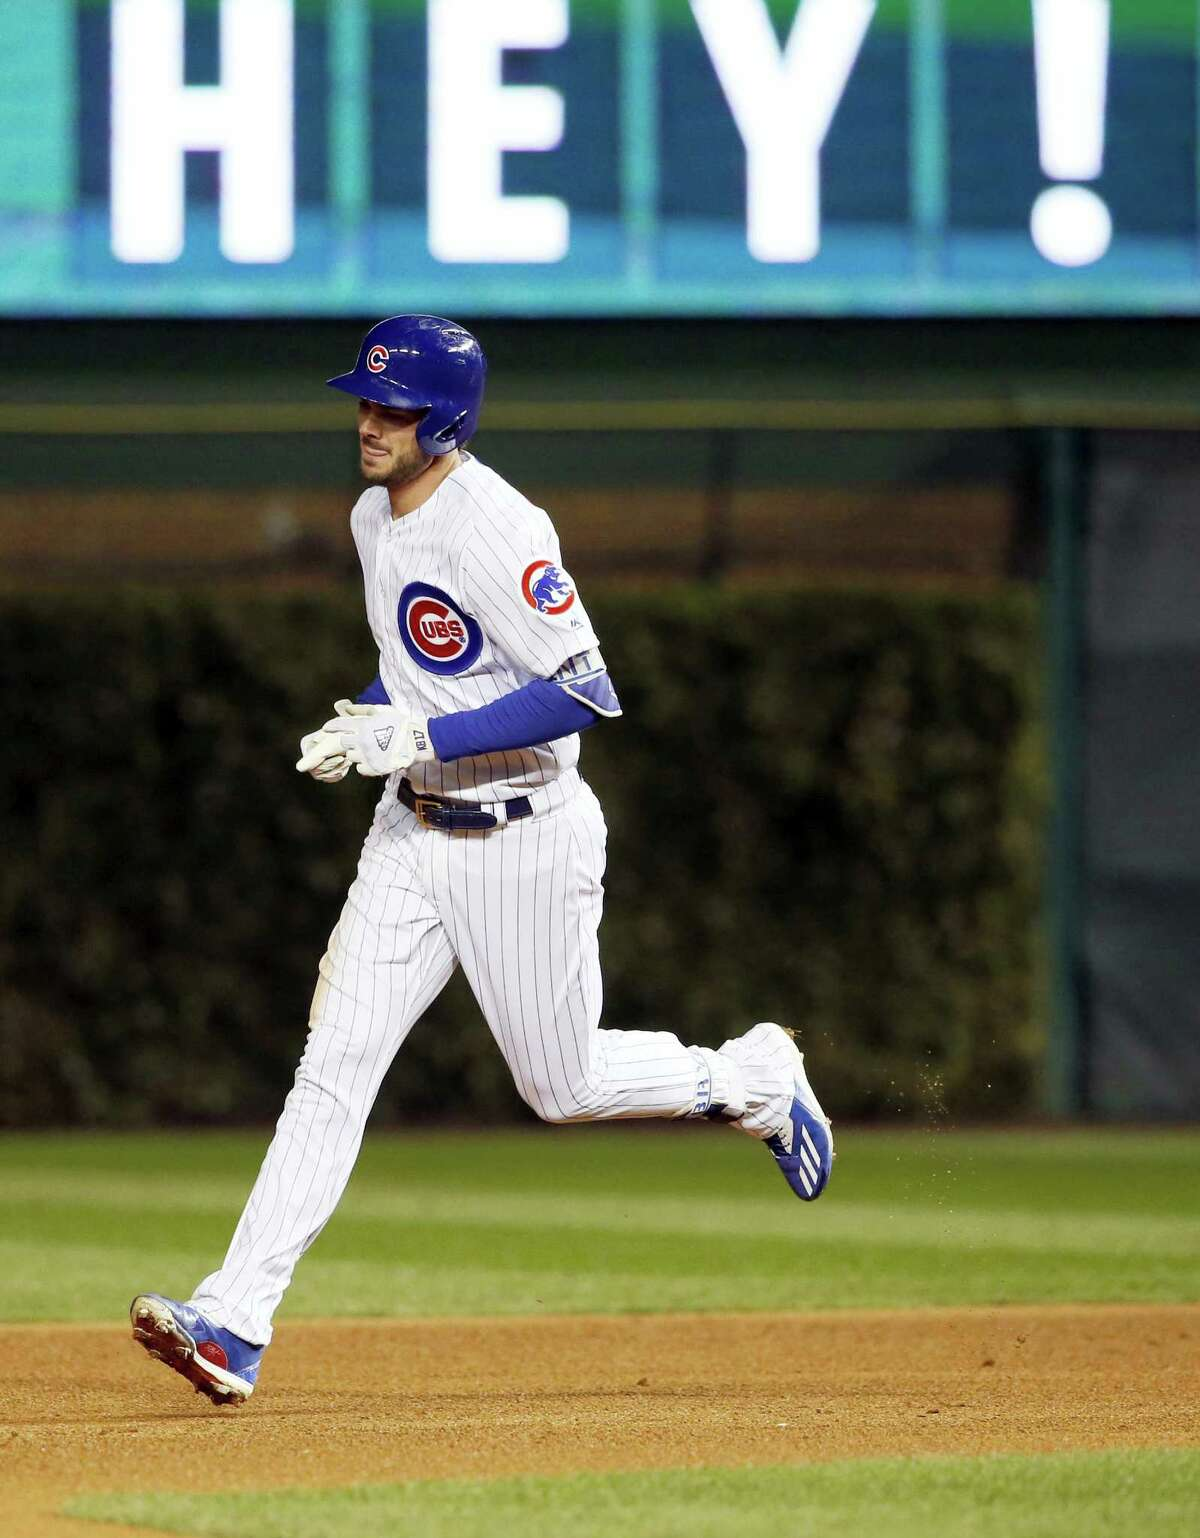 The Cubs' Kris Bryant runs bases after hitting a home run during the fourth inning.